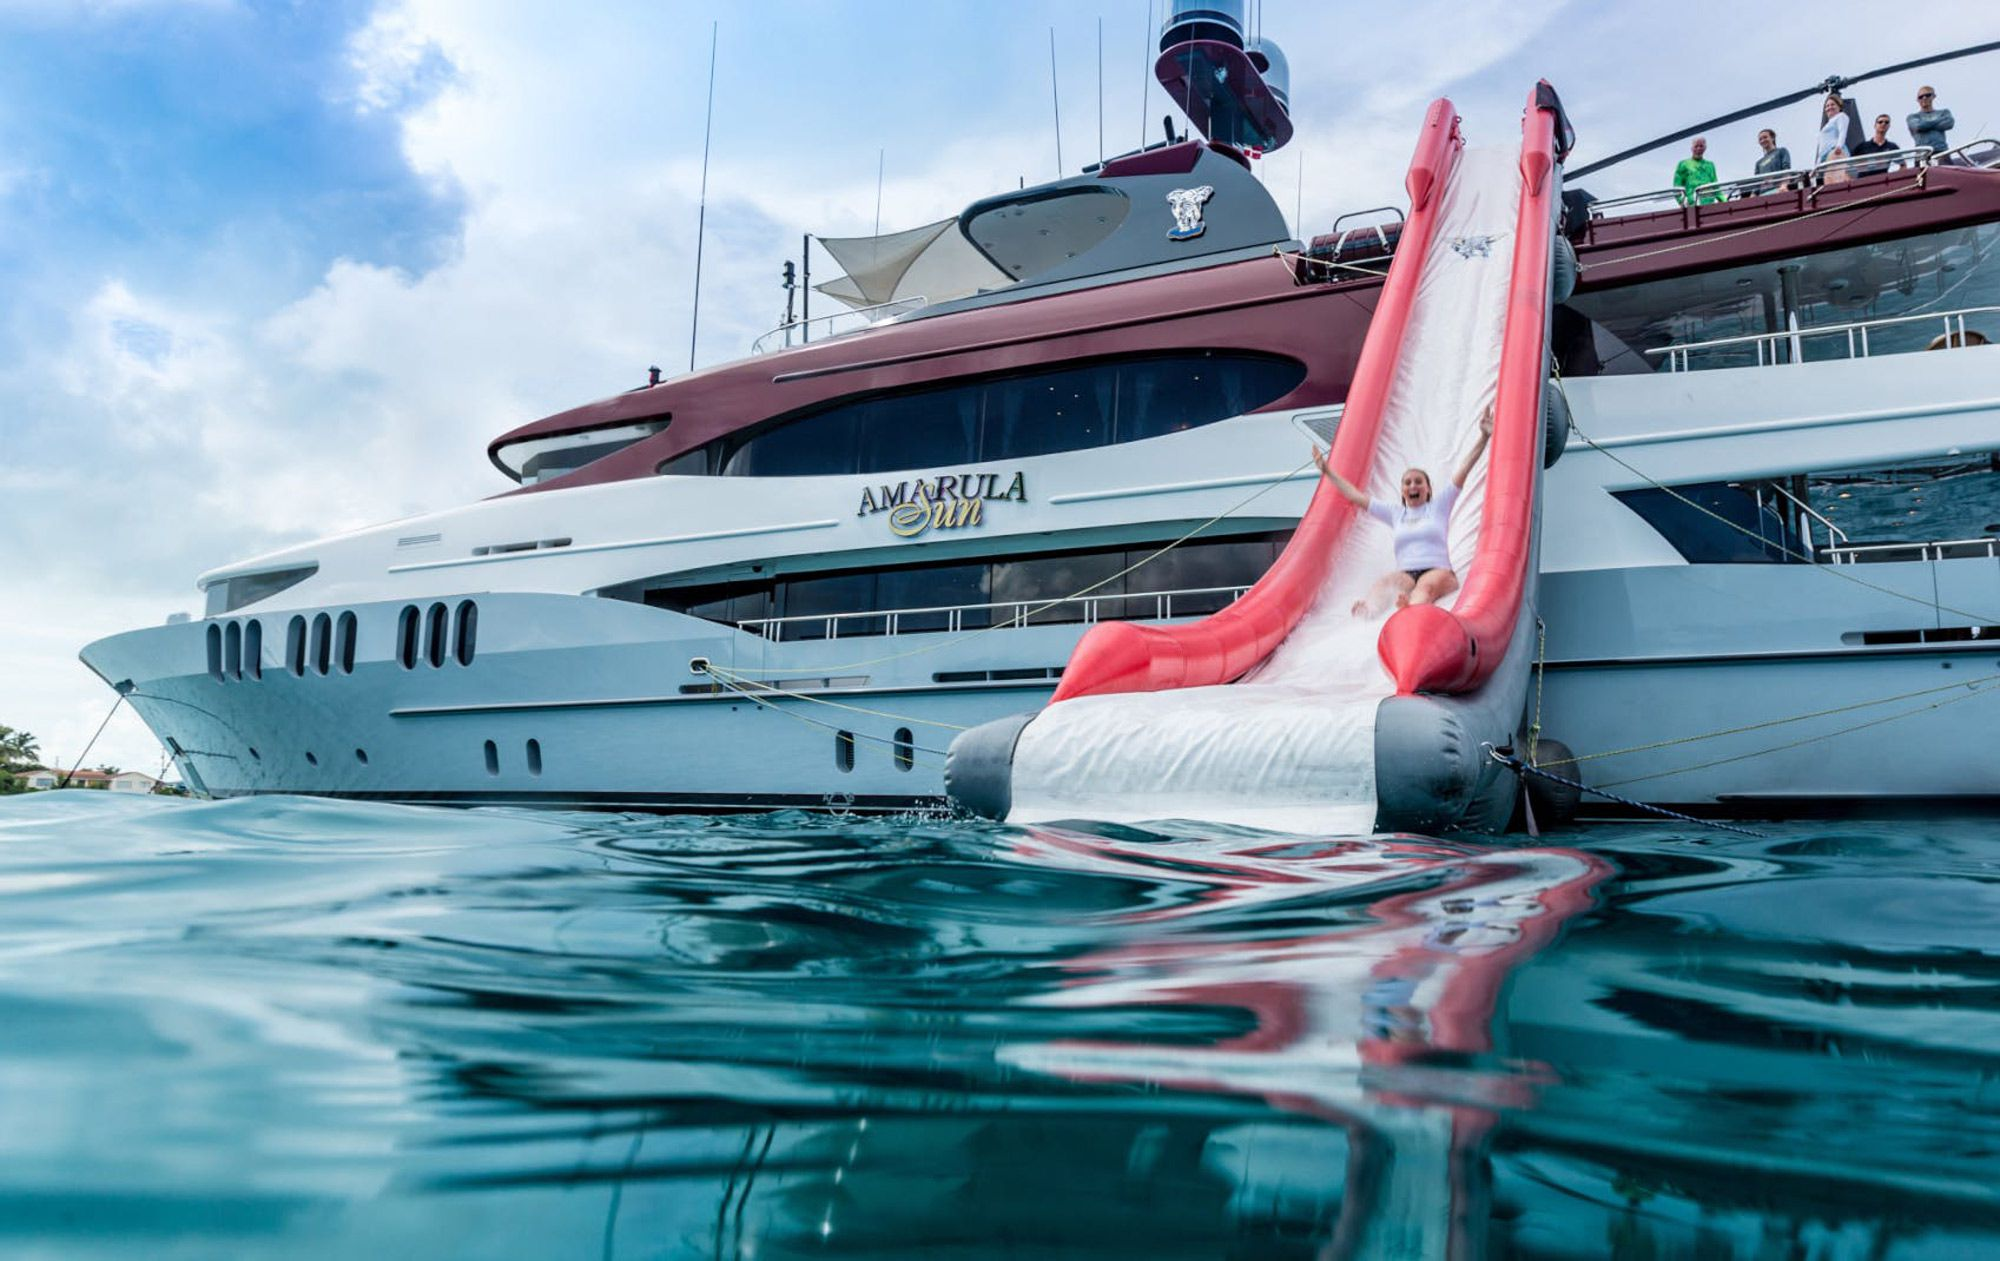 The yacht has an array of watertoys and tenders, including this slide.